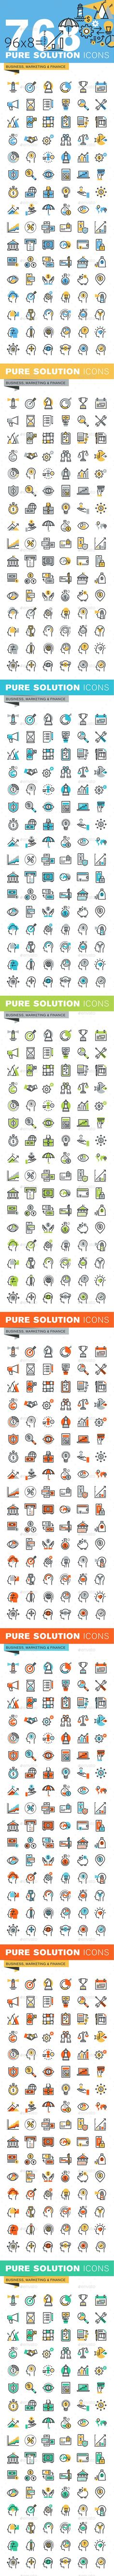 Wireless icon line iconset iconsmind - Set Of Thin Line Flat Design Icons Of Business And Finance